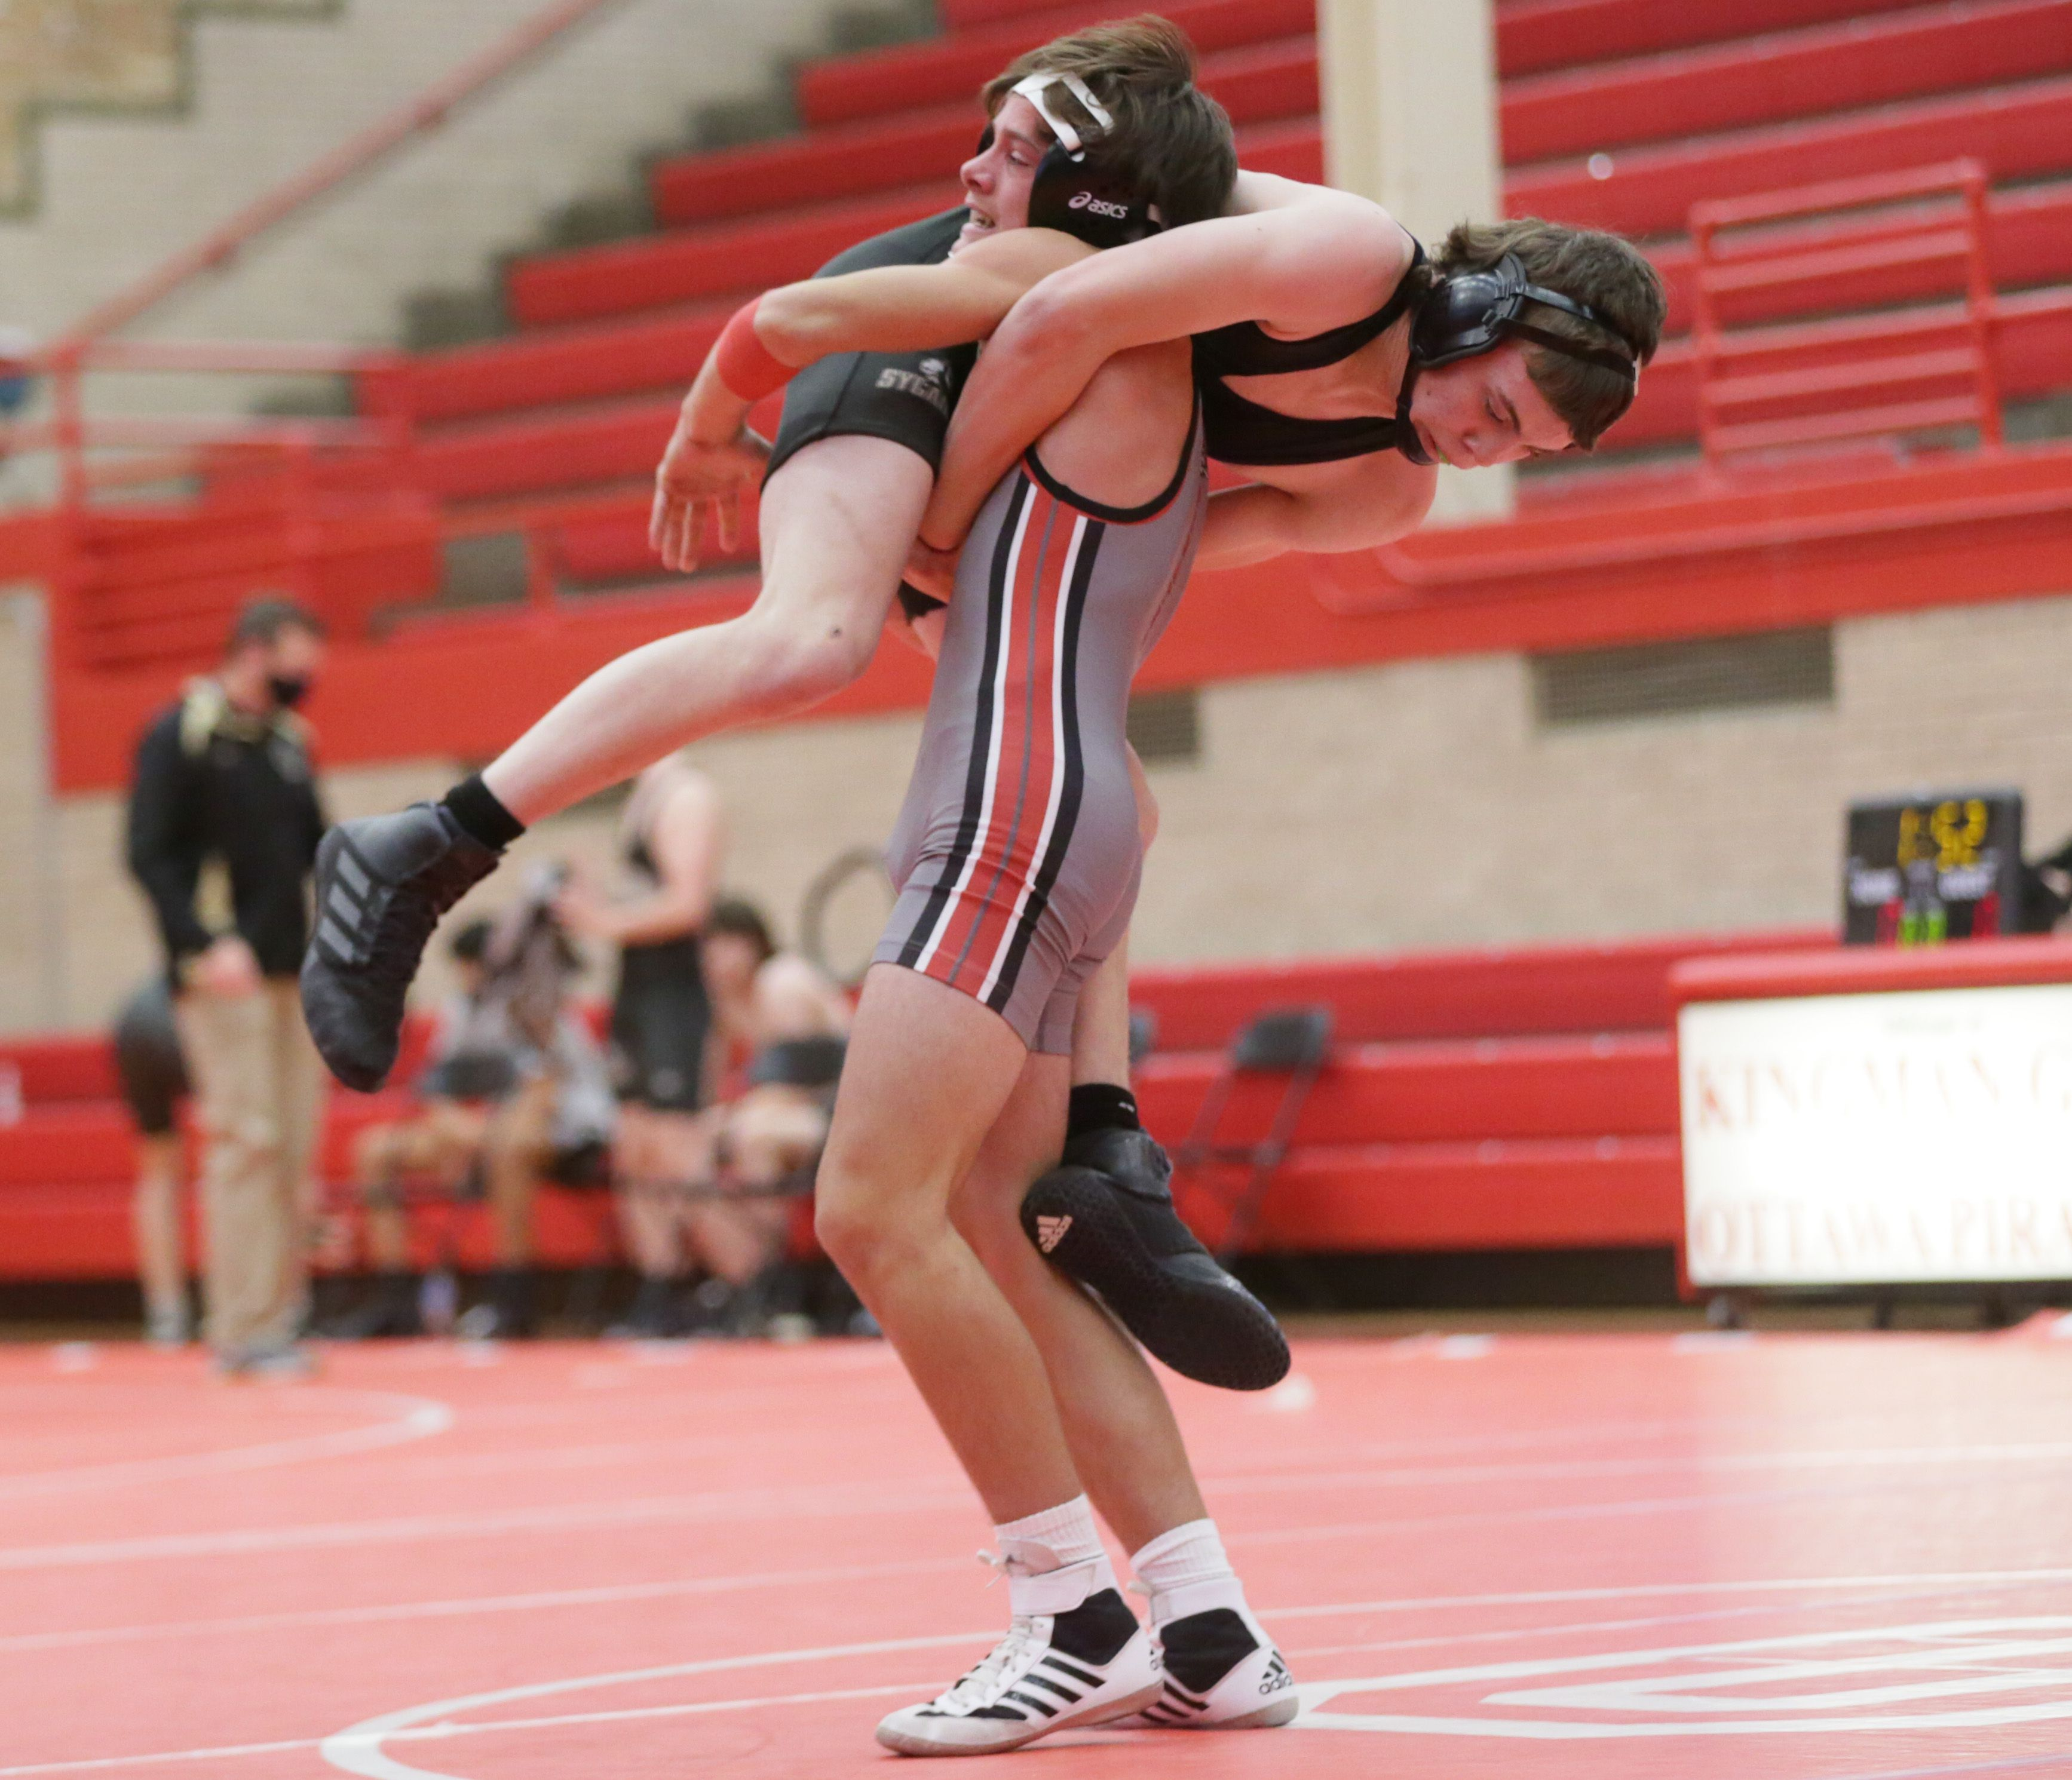 Ottawa's Grason Johnson lifts Sycamore's Trent DuMont off of the mat during a wrestling meet at Ottawa on Saturday May 1, 2021.